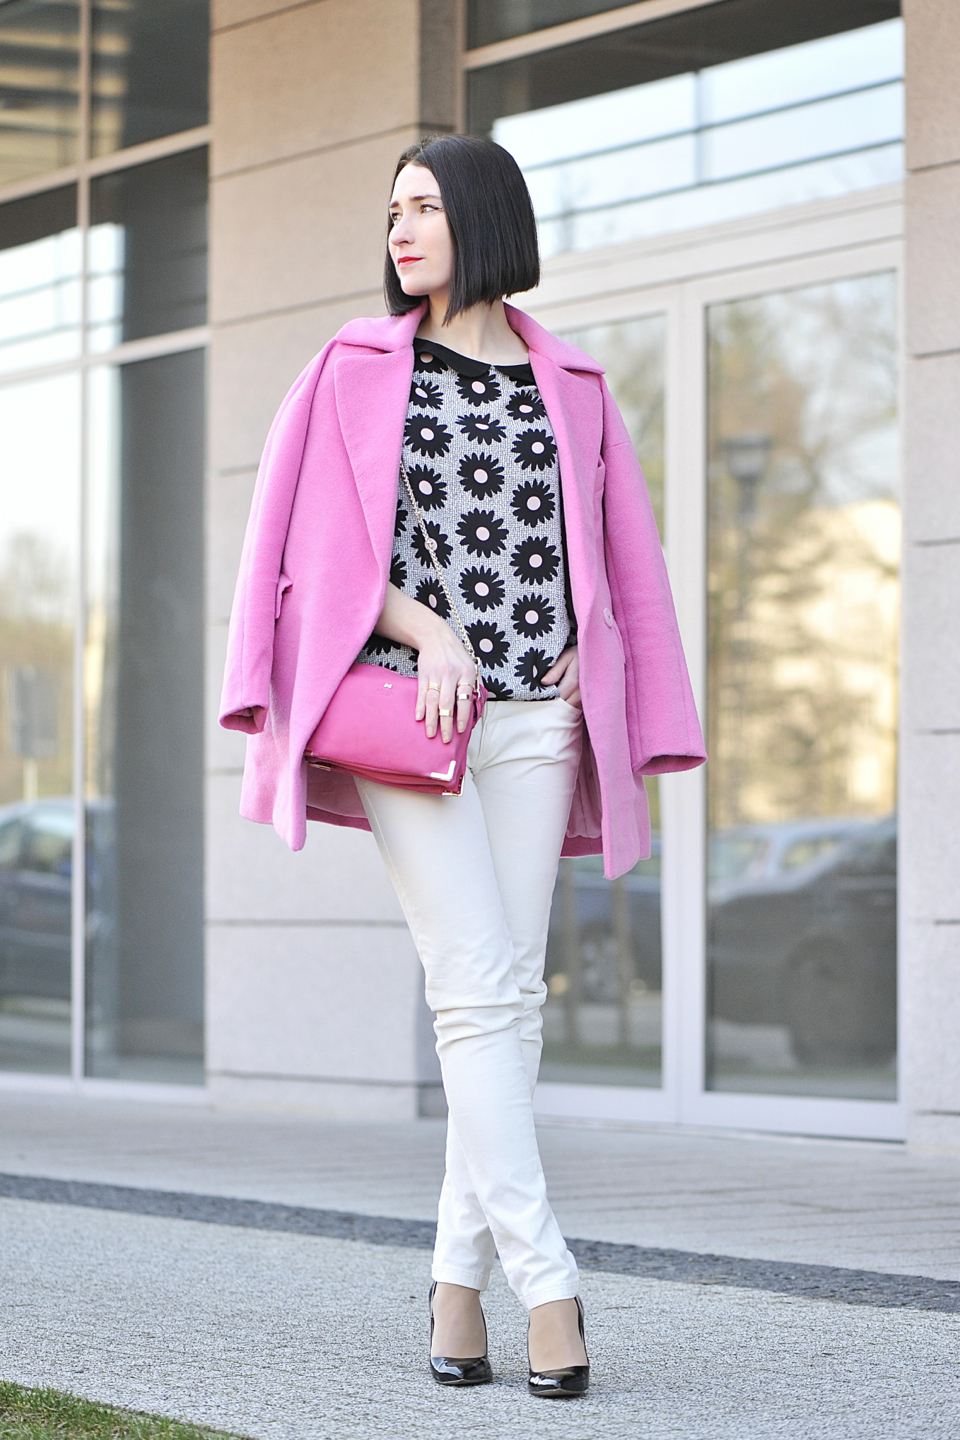 Black Blouse With White Collar